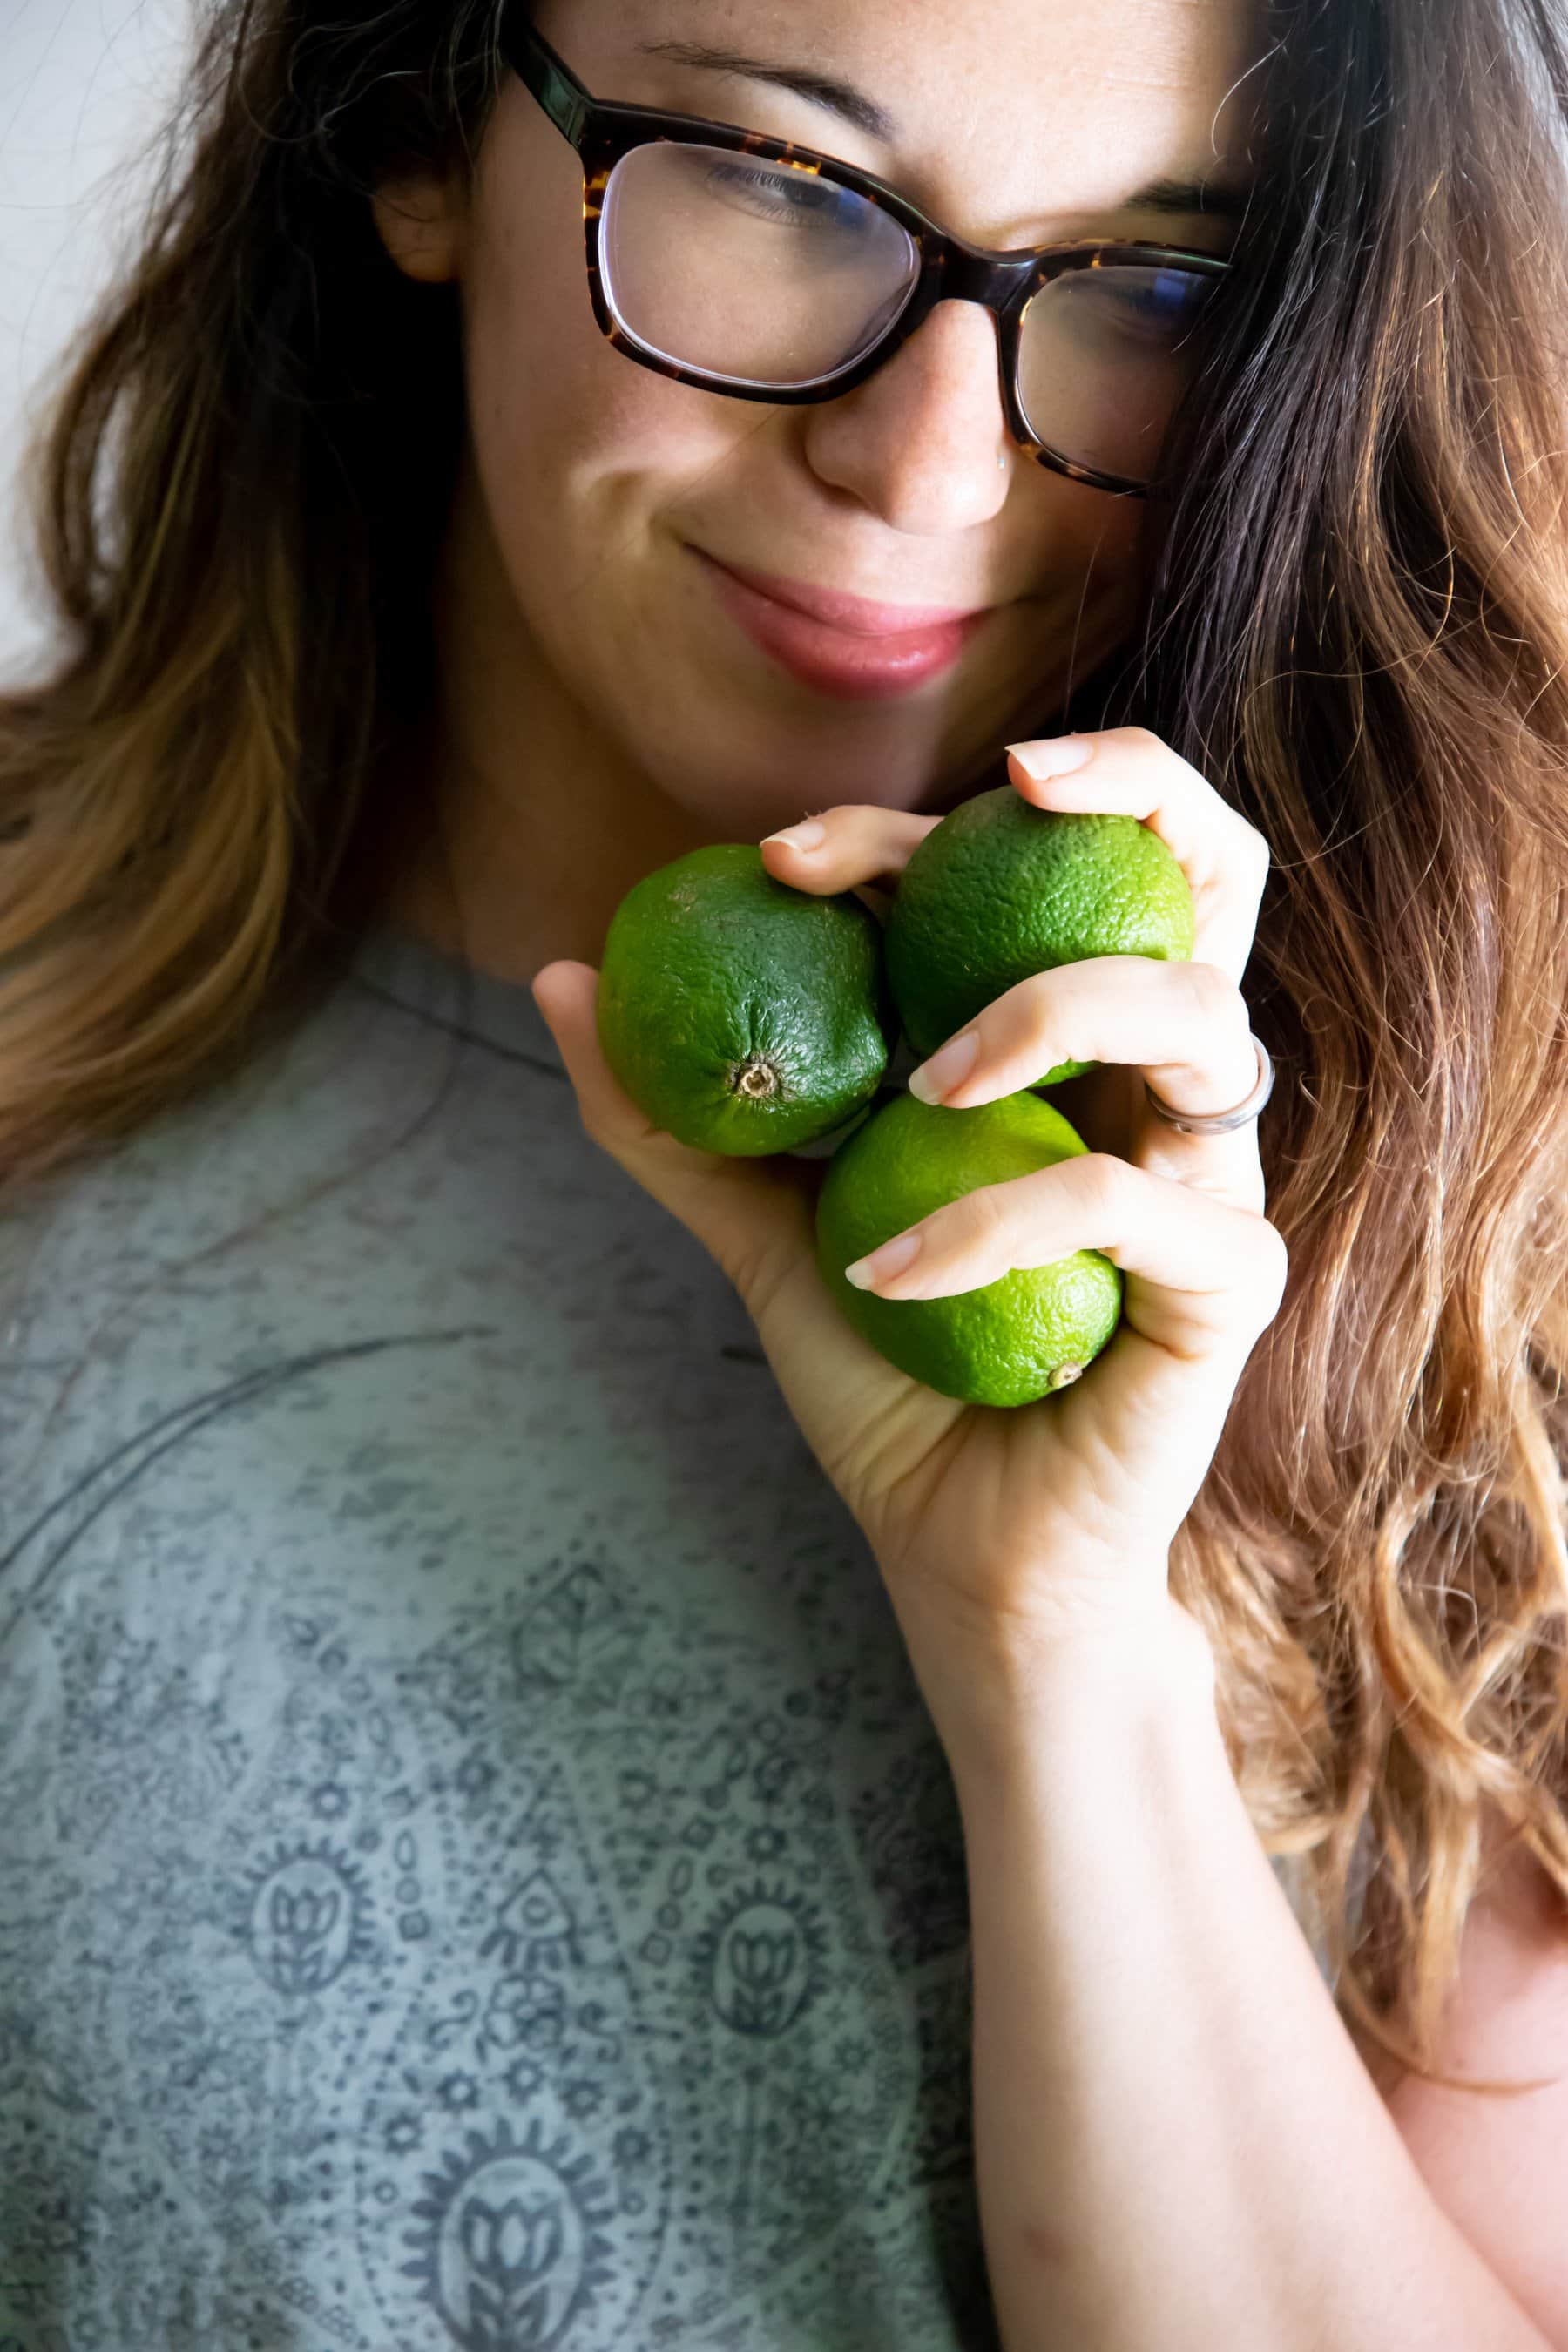 Brunette woman in glasses holding three limes by her face